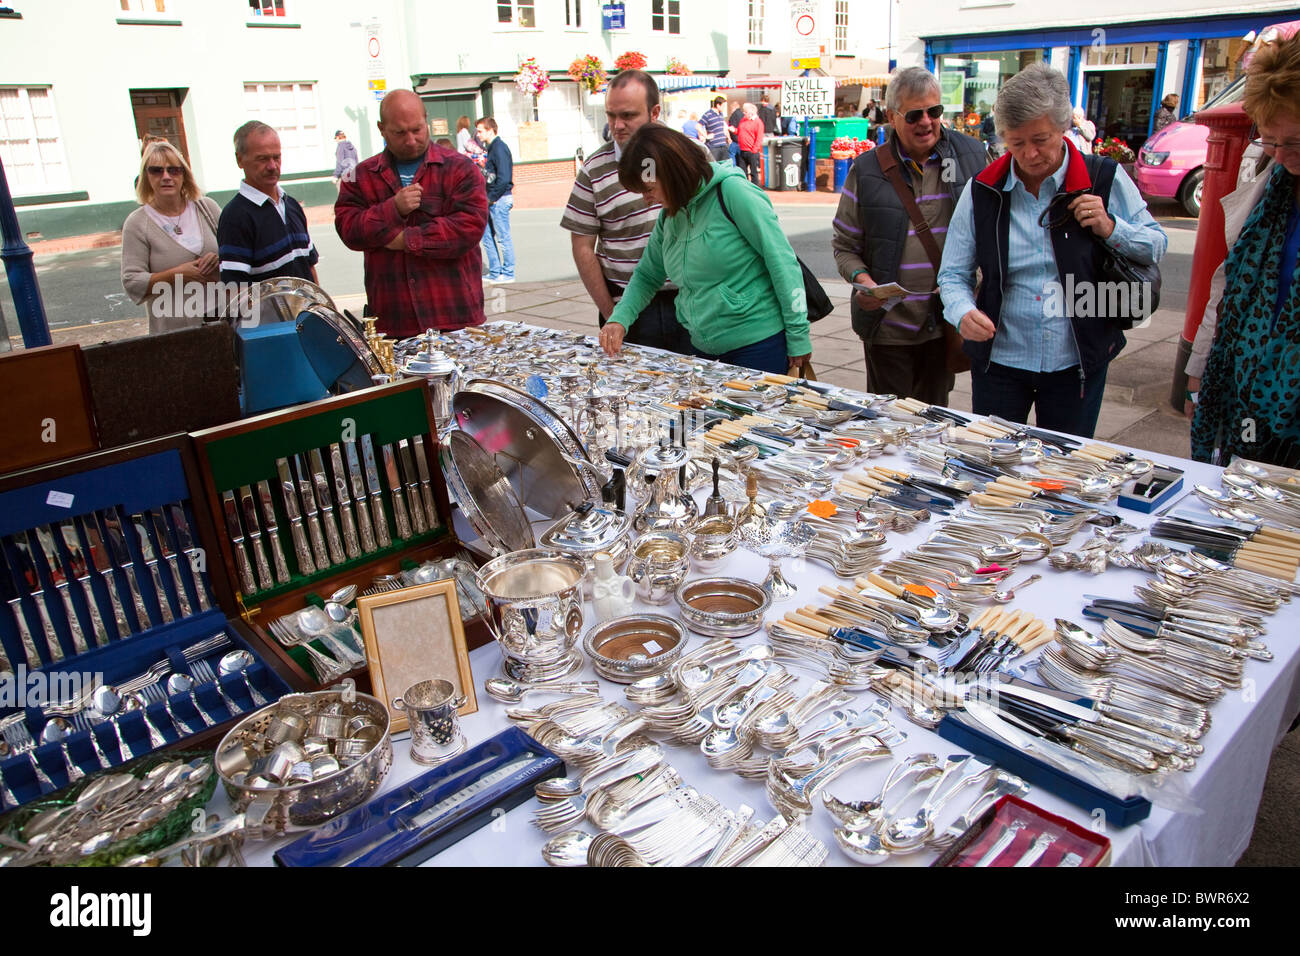 Antique silverware and cutlery on sale at street market stall Abergavenny Wales UK - Stock Image